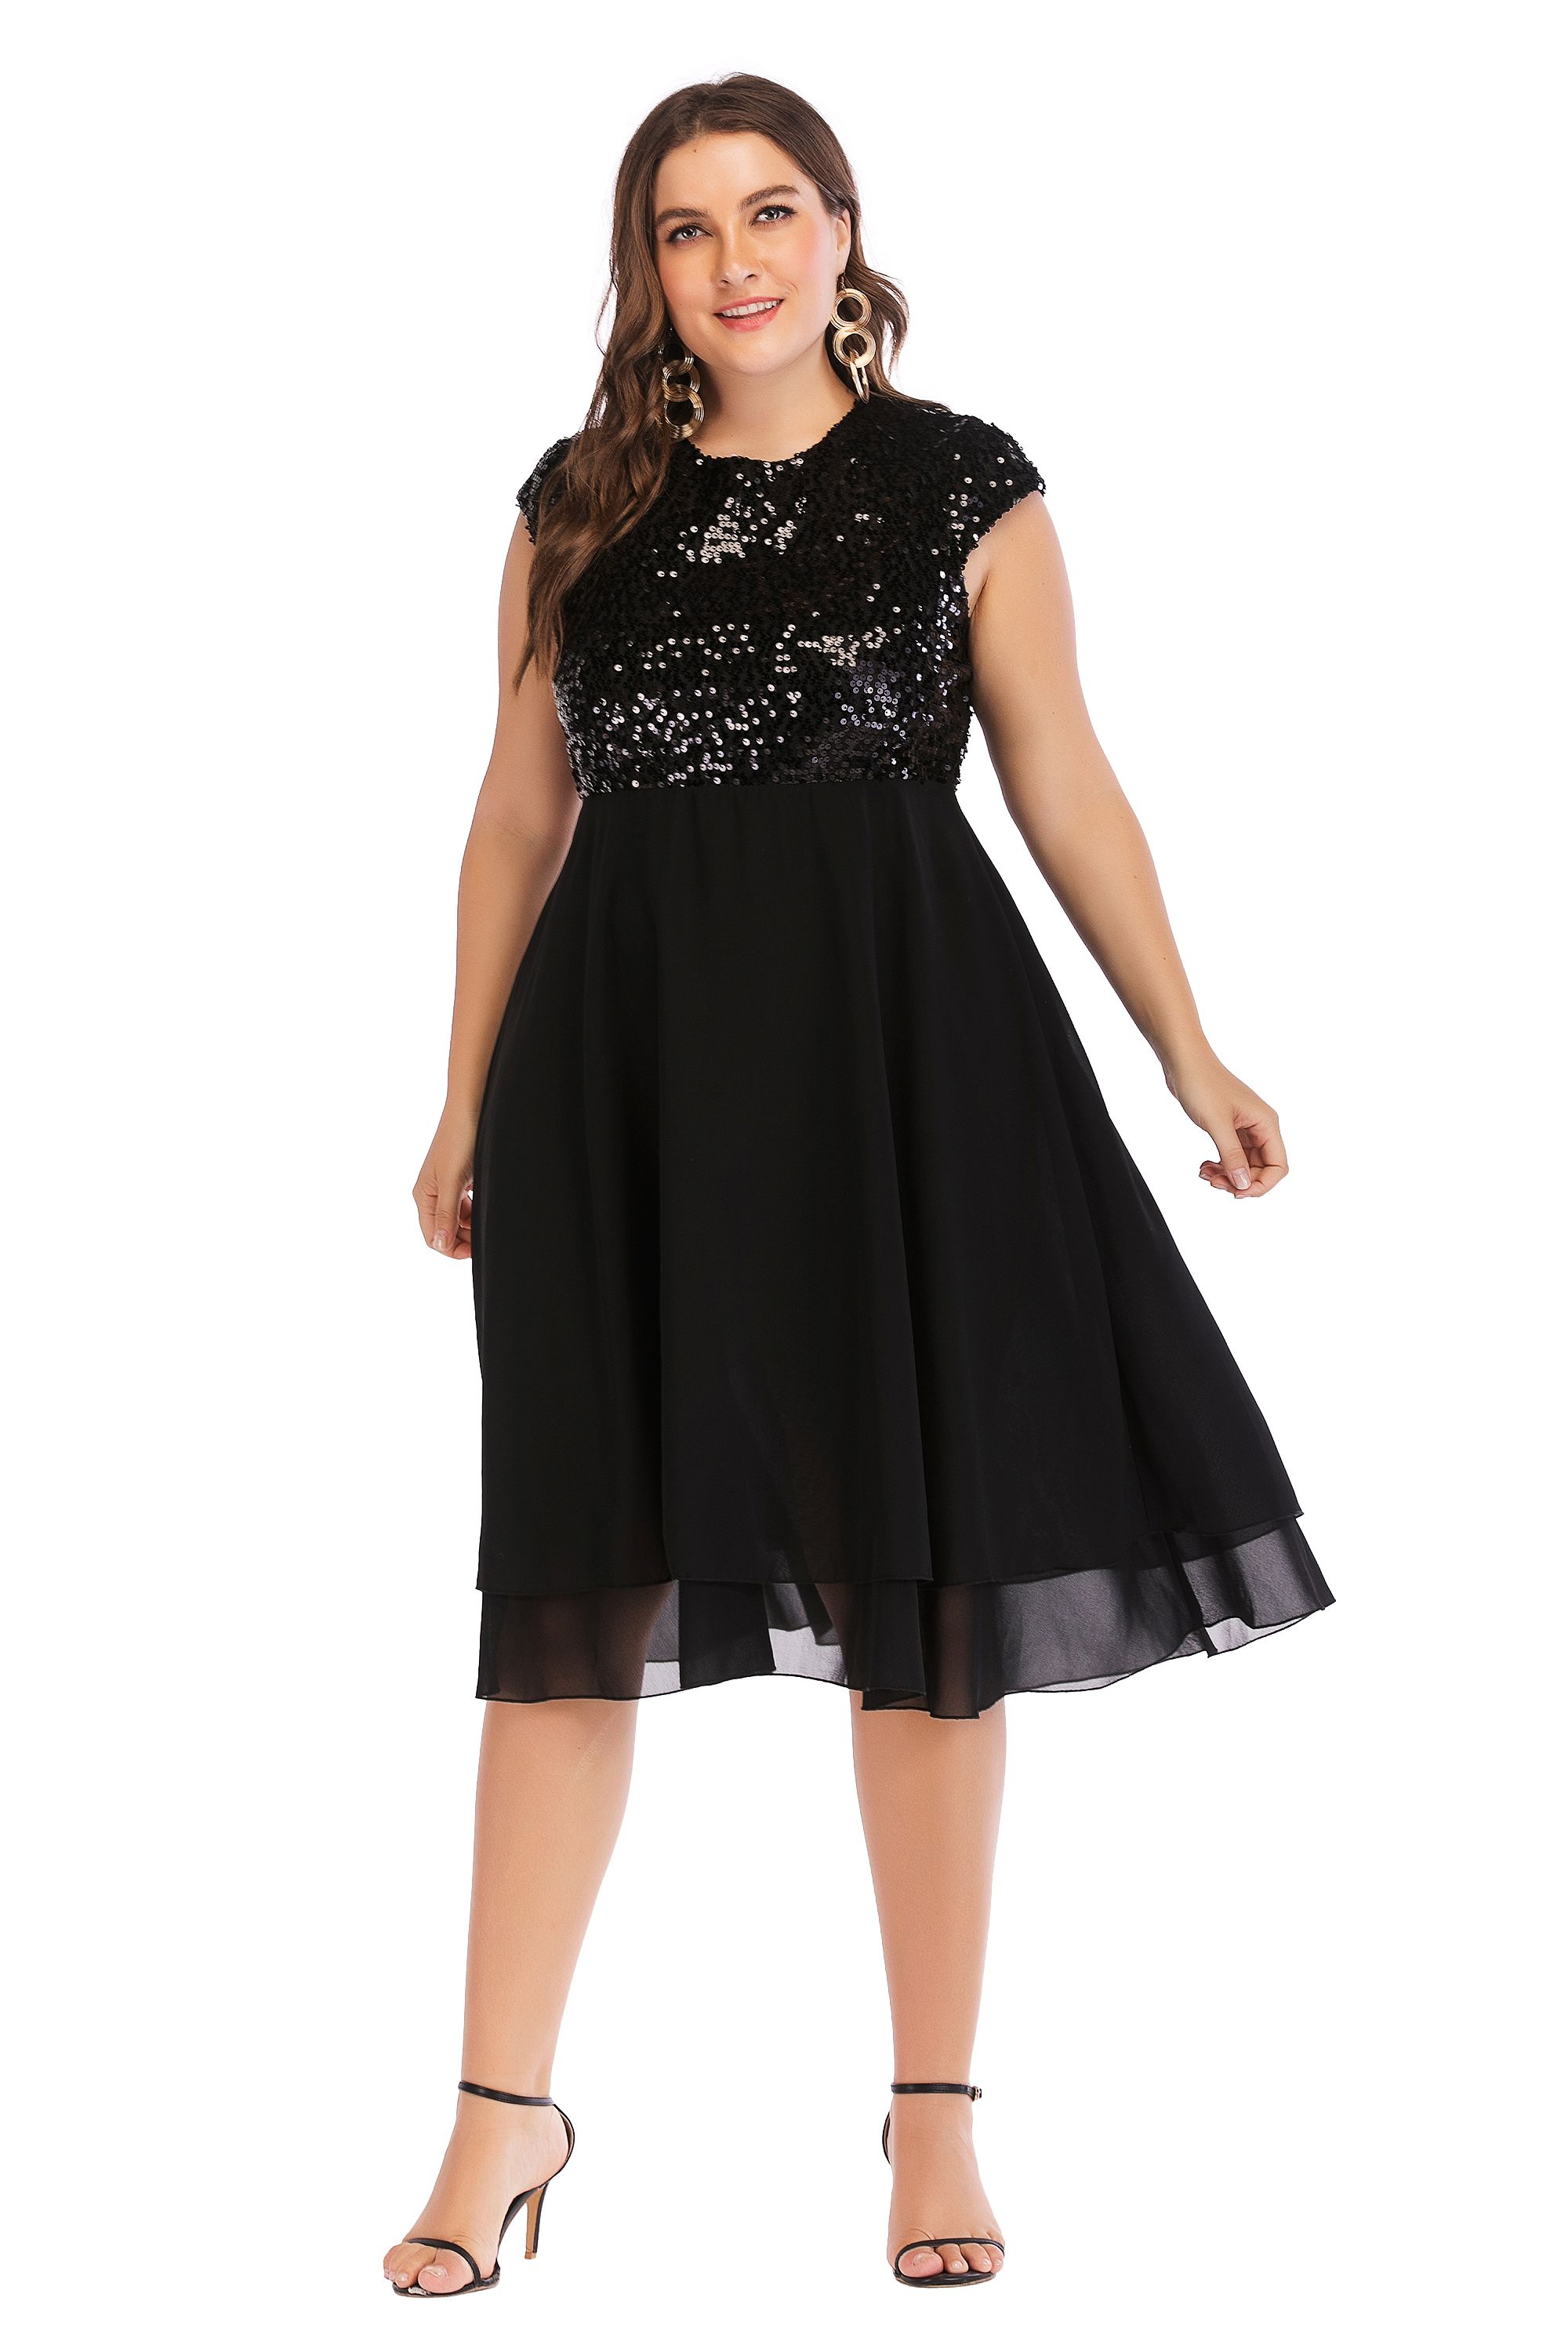 8b7cc7b373b8b ESPRLIA Womens Plus Size Sequin Short Cap-Sleeve Holiday Party Homecoming Midi  Dress